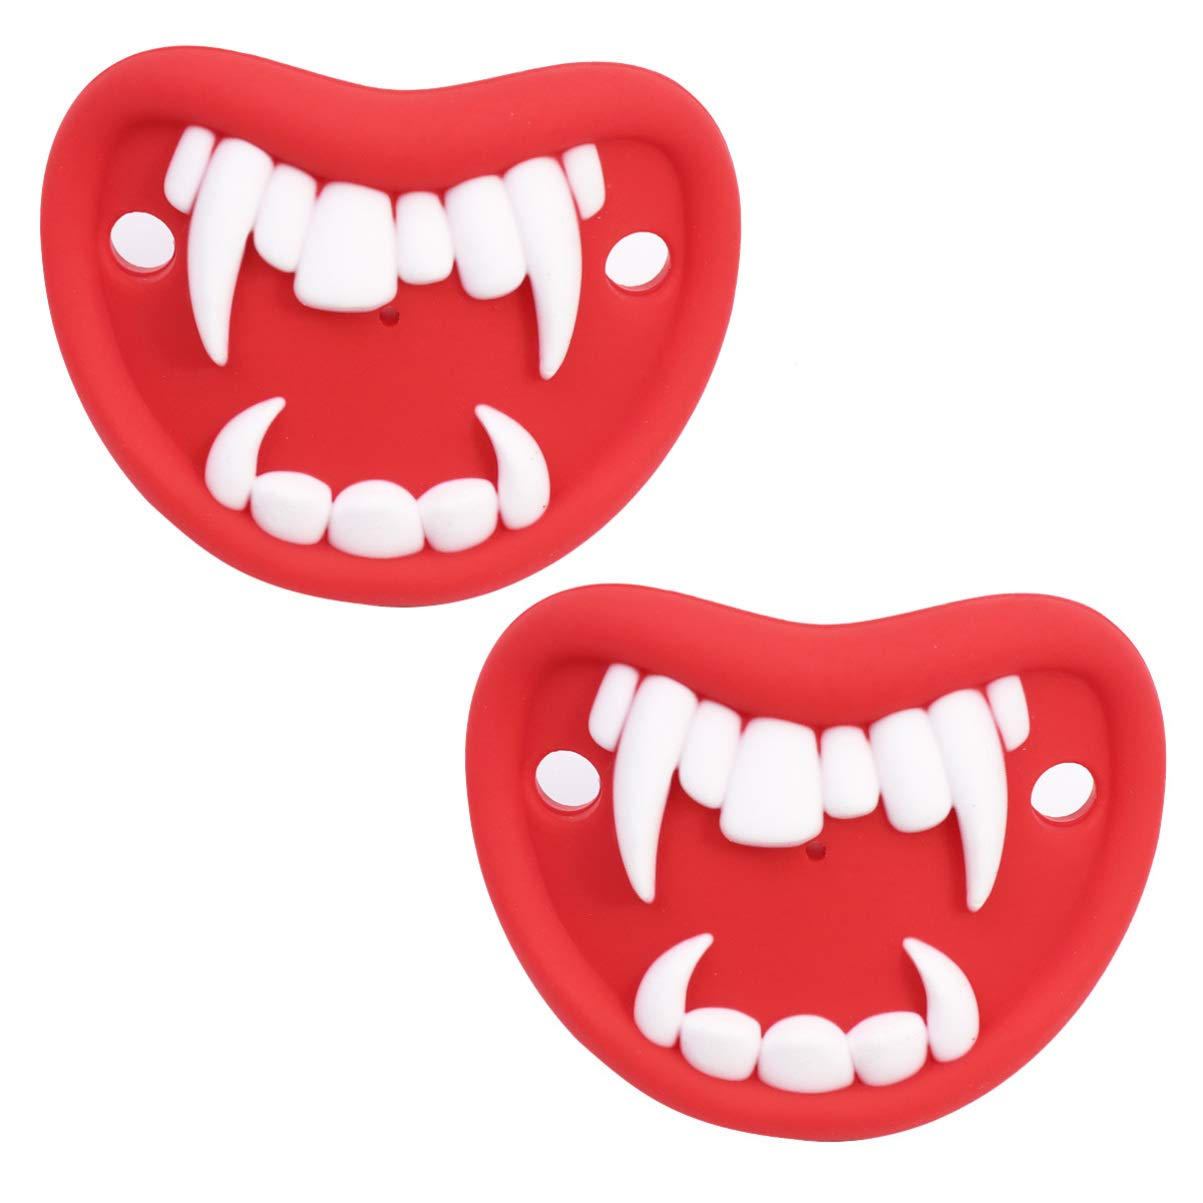 KESYOO 2pcs Baby Pacifier Funny Shape Halloween Vampire 70% OFF Outlet Store